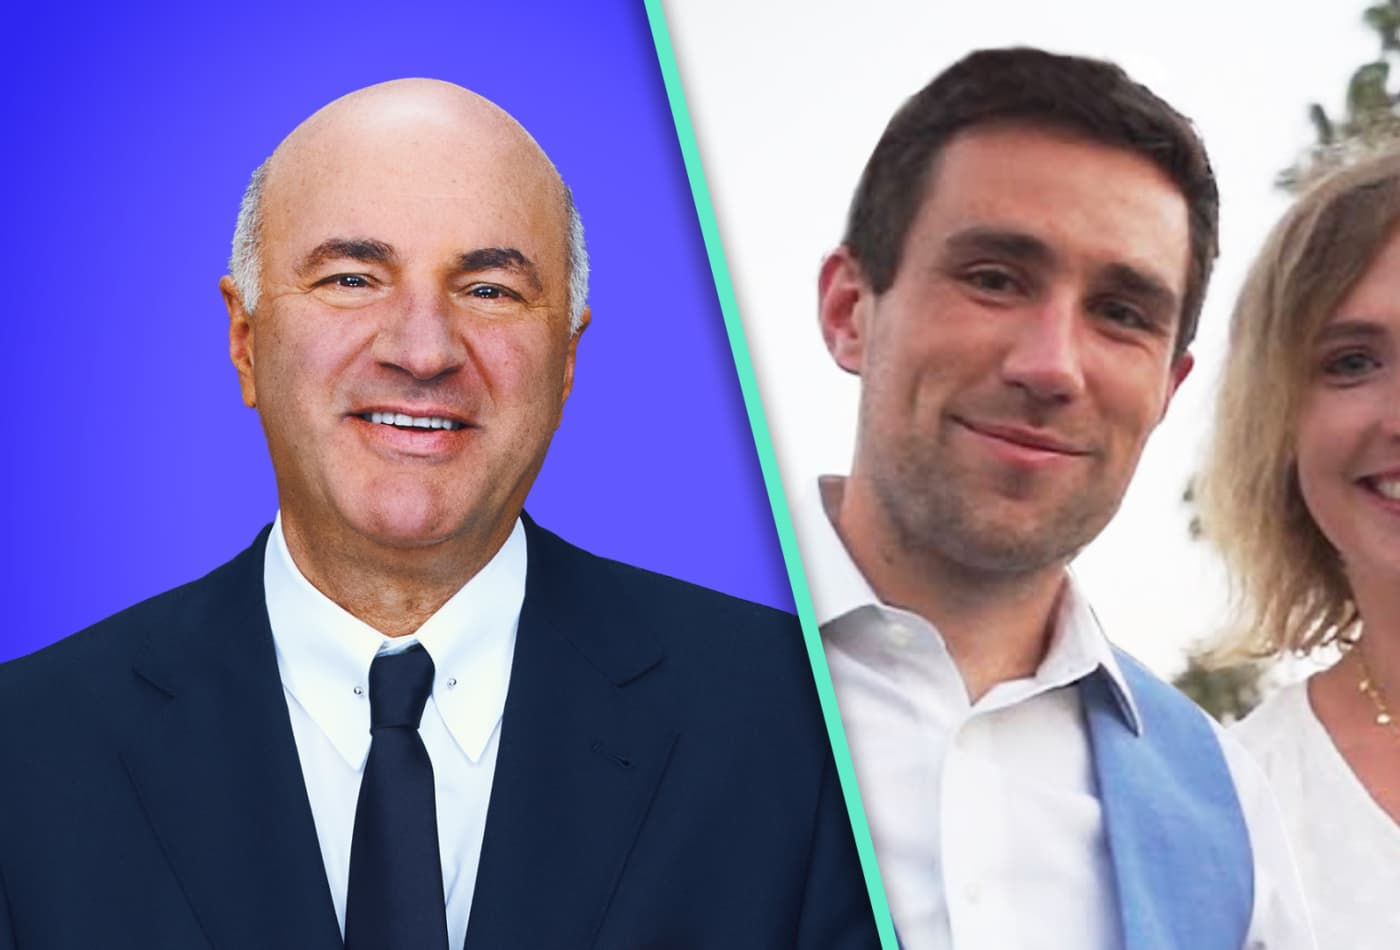 Kevin O'Leary reacts to a couple who earn $6 million a year through YouTube and real estate